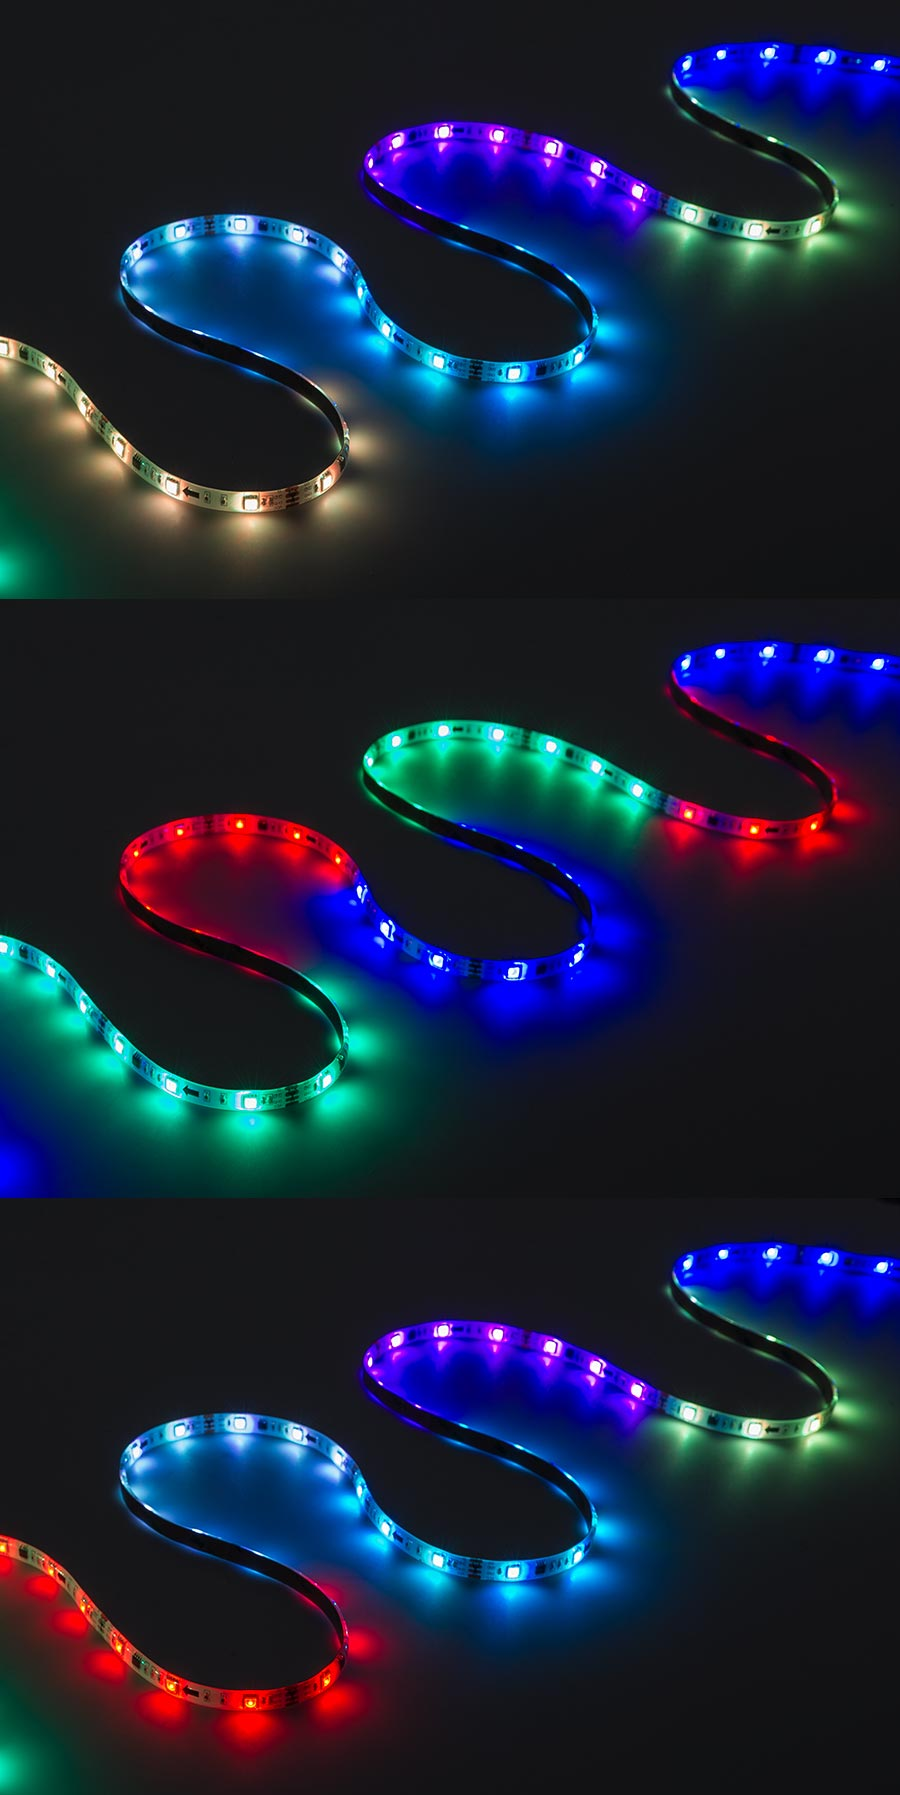 Color Chasing RGB LED Light Strip Kit - Flexible LED Tape Light with 9 SMD  LEDs/ft. - 3 Chip RGB SMD LED 5050: On Showing Multiple Color Dreamcolor  Modes.